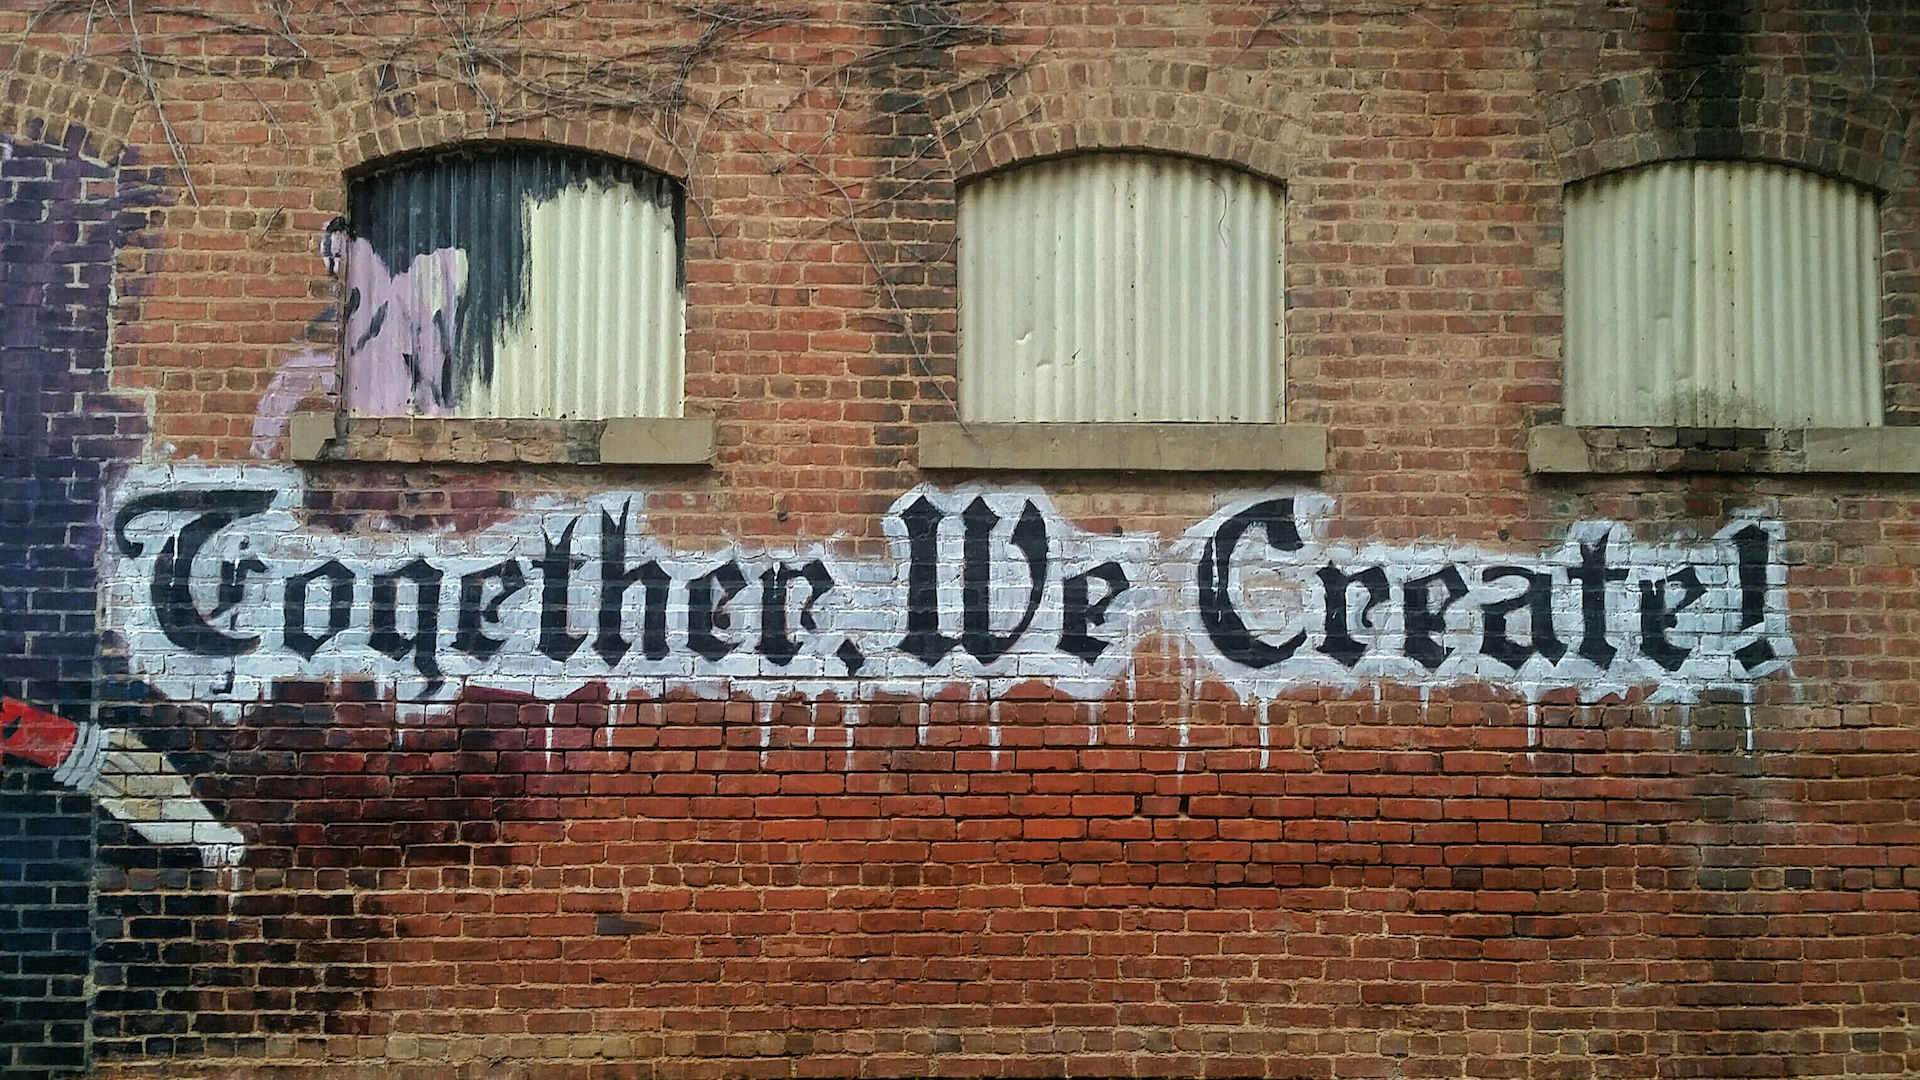 Painted on a brick wall reads together we create